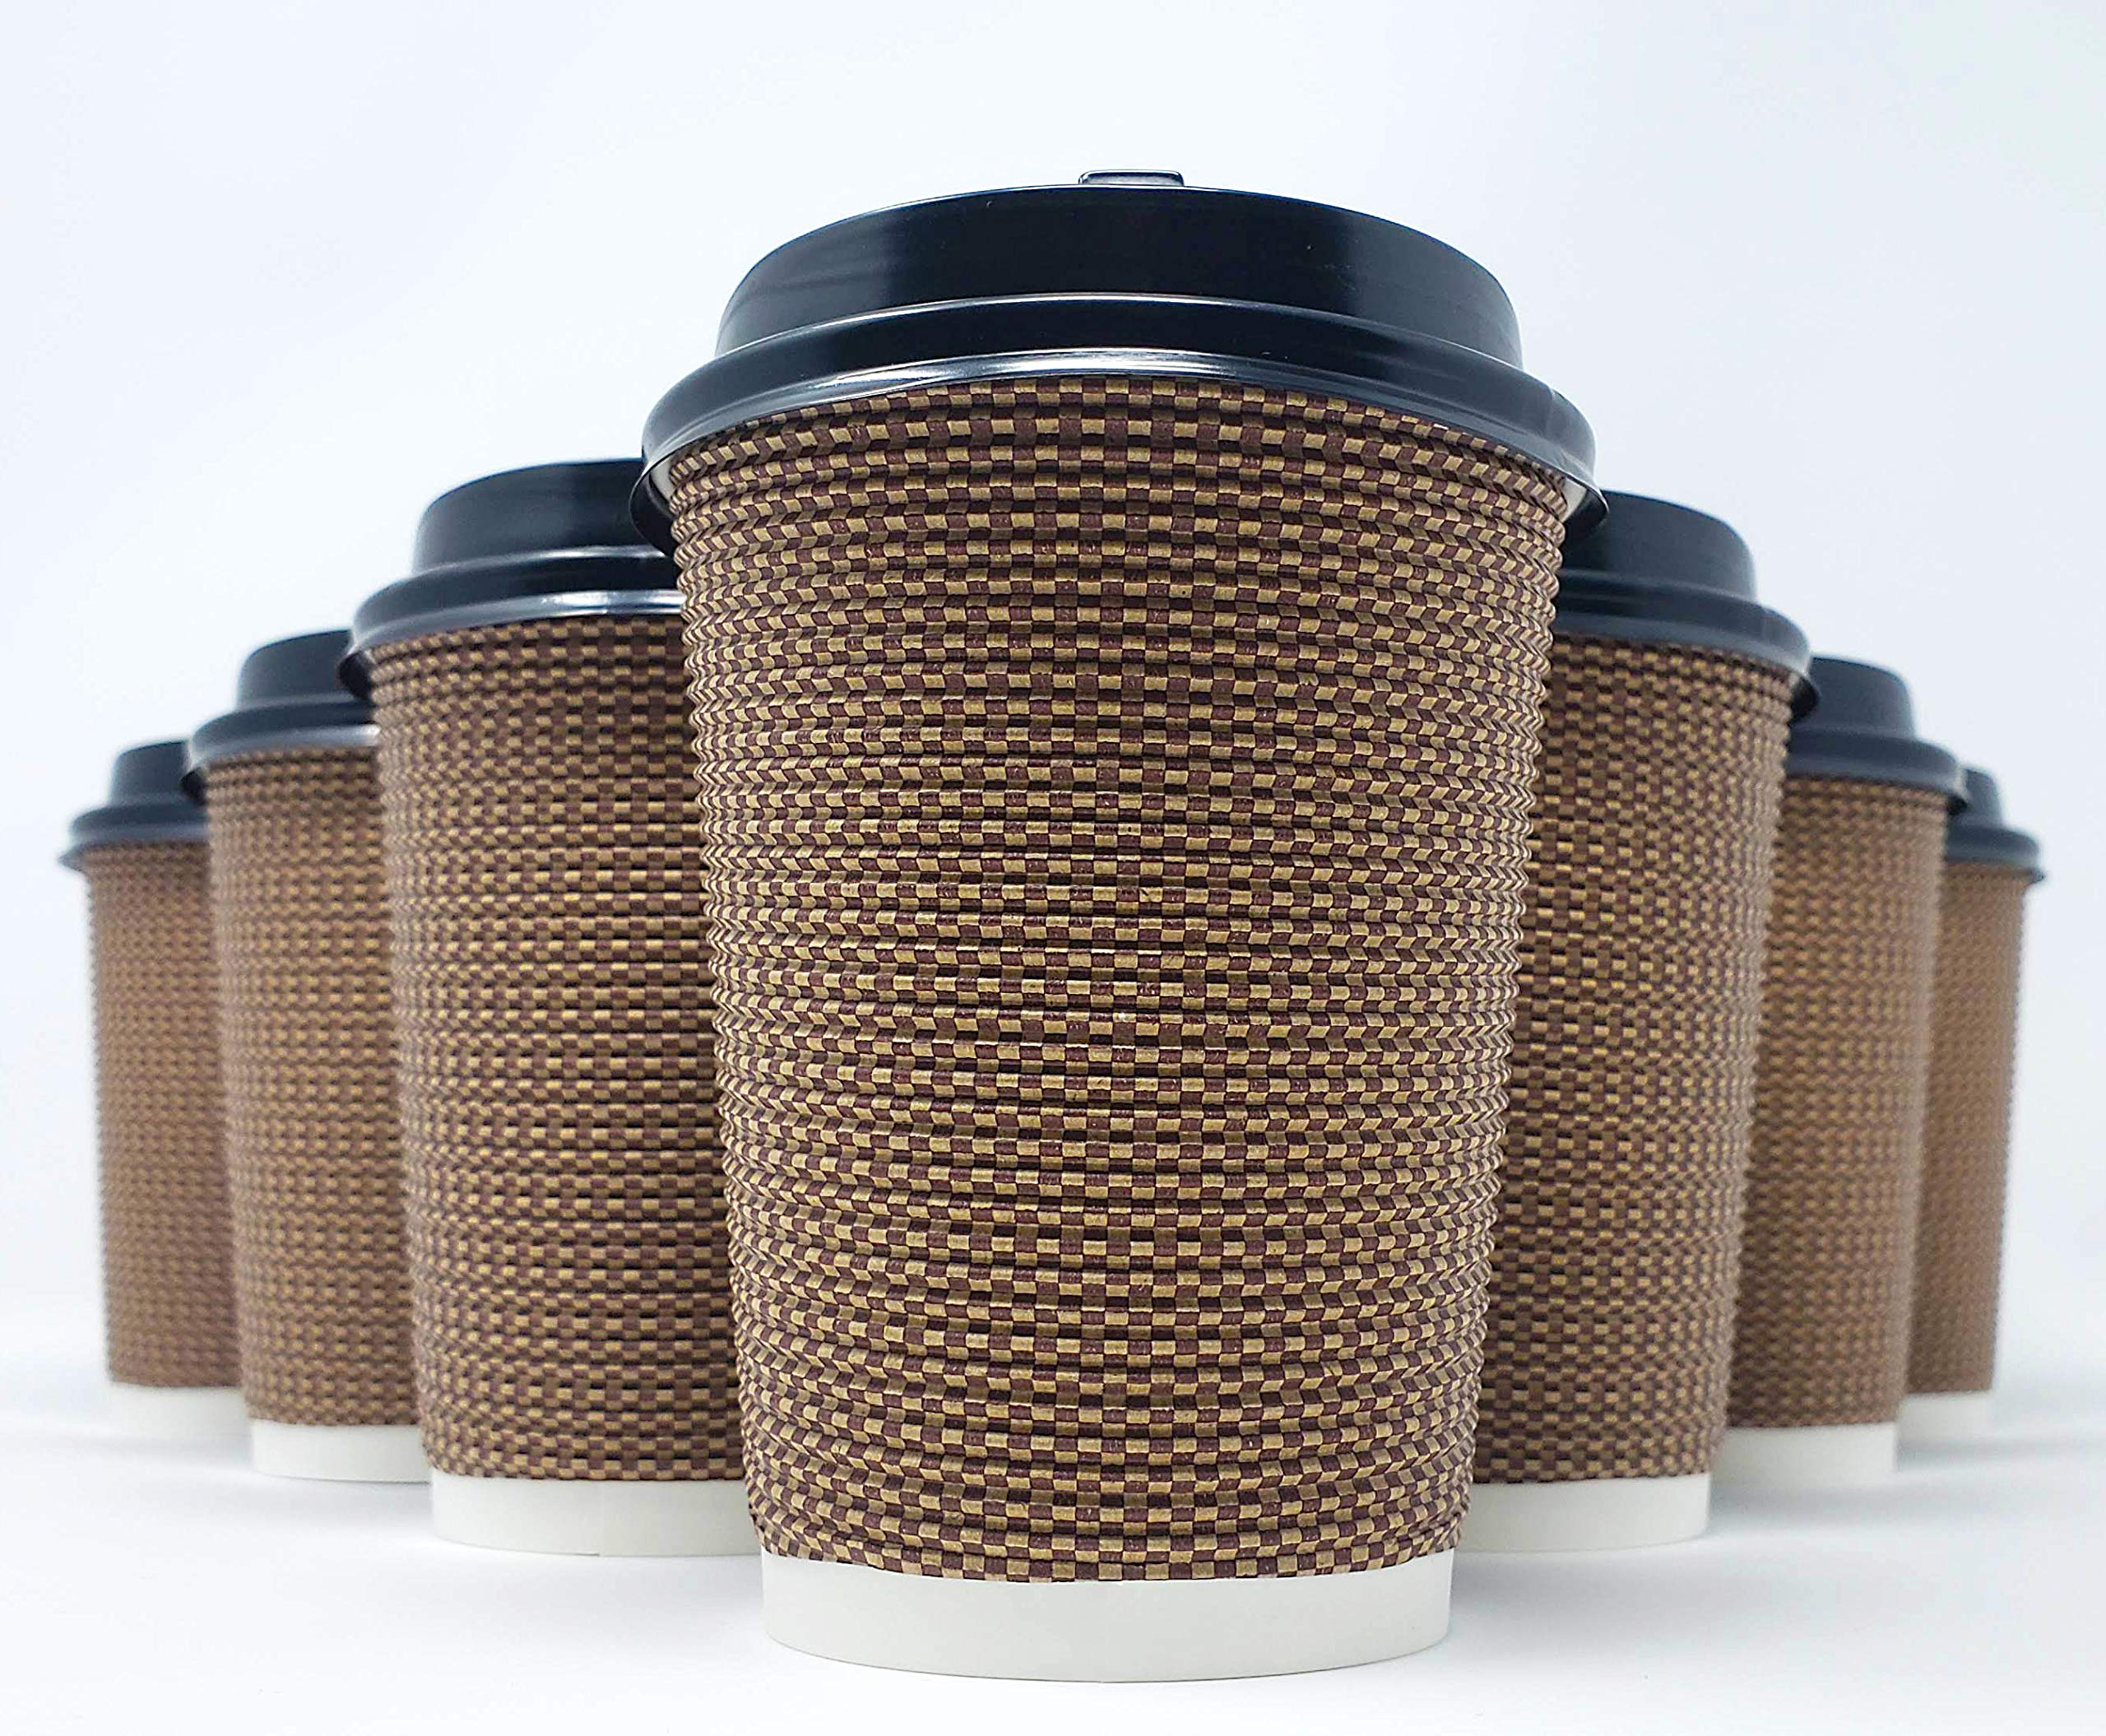 Nature's Curios 50-pack Premium 12 oz Paper Coffee Cups with Lids - Sturdy, Disposable, Insulated, Corrugated, Rippled for Hot and Cold Drinks (Brown)